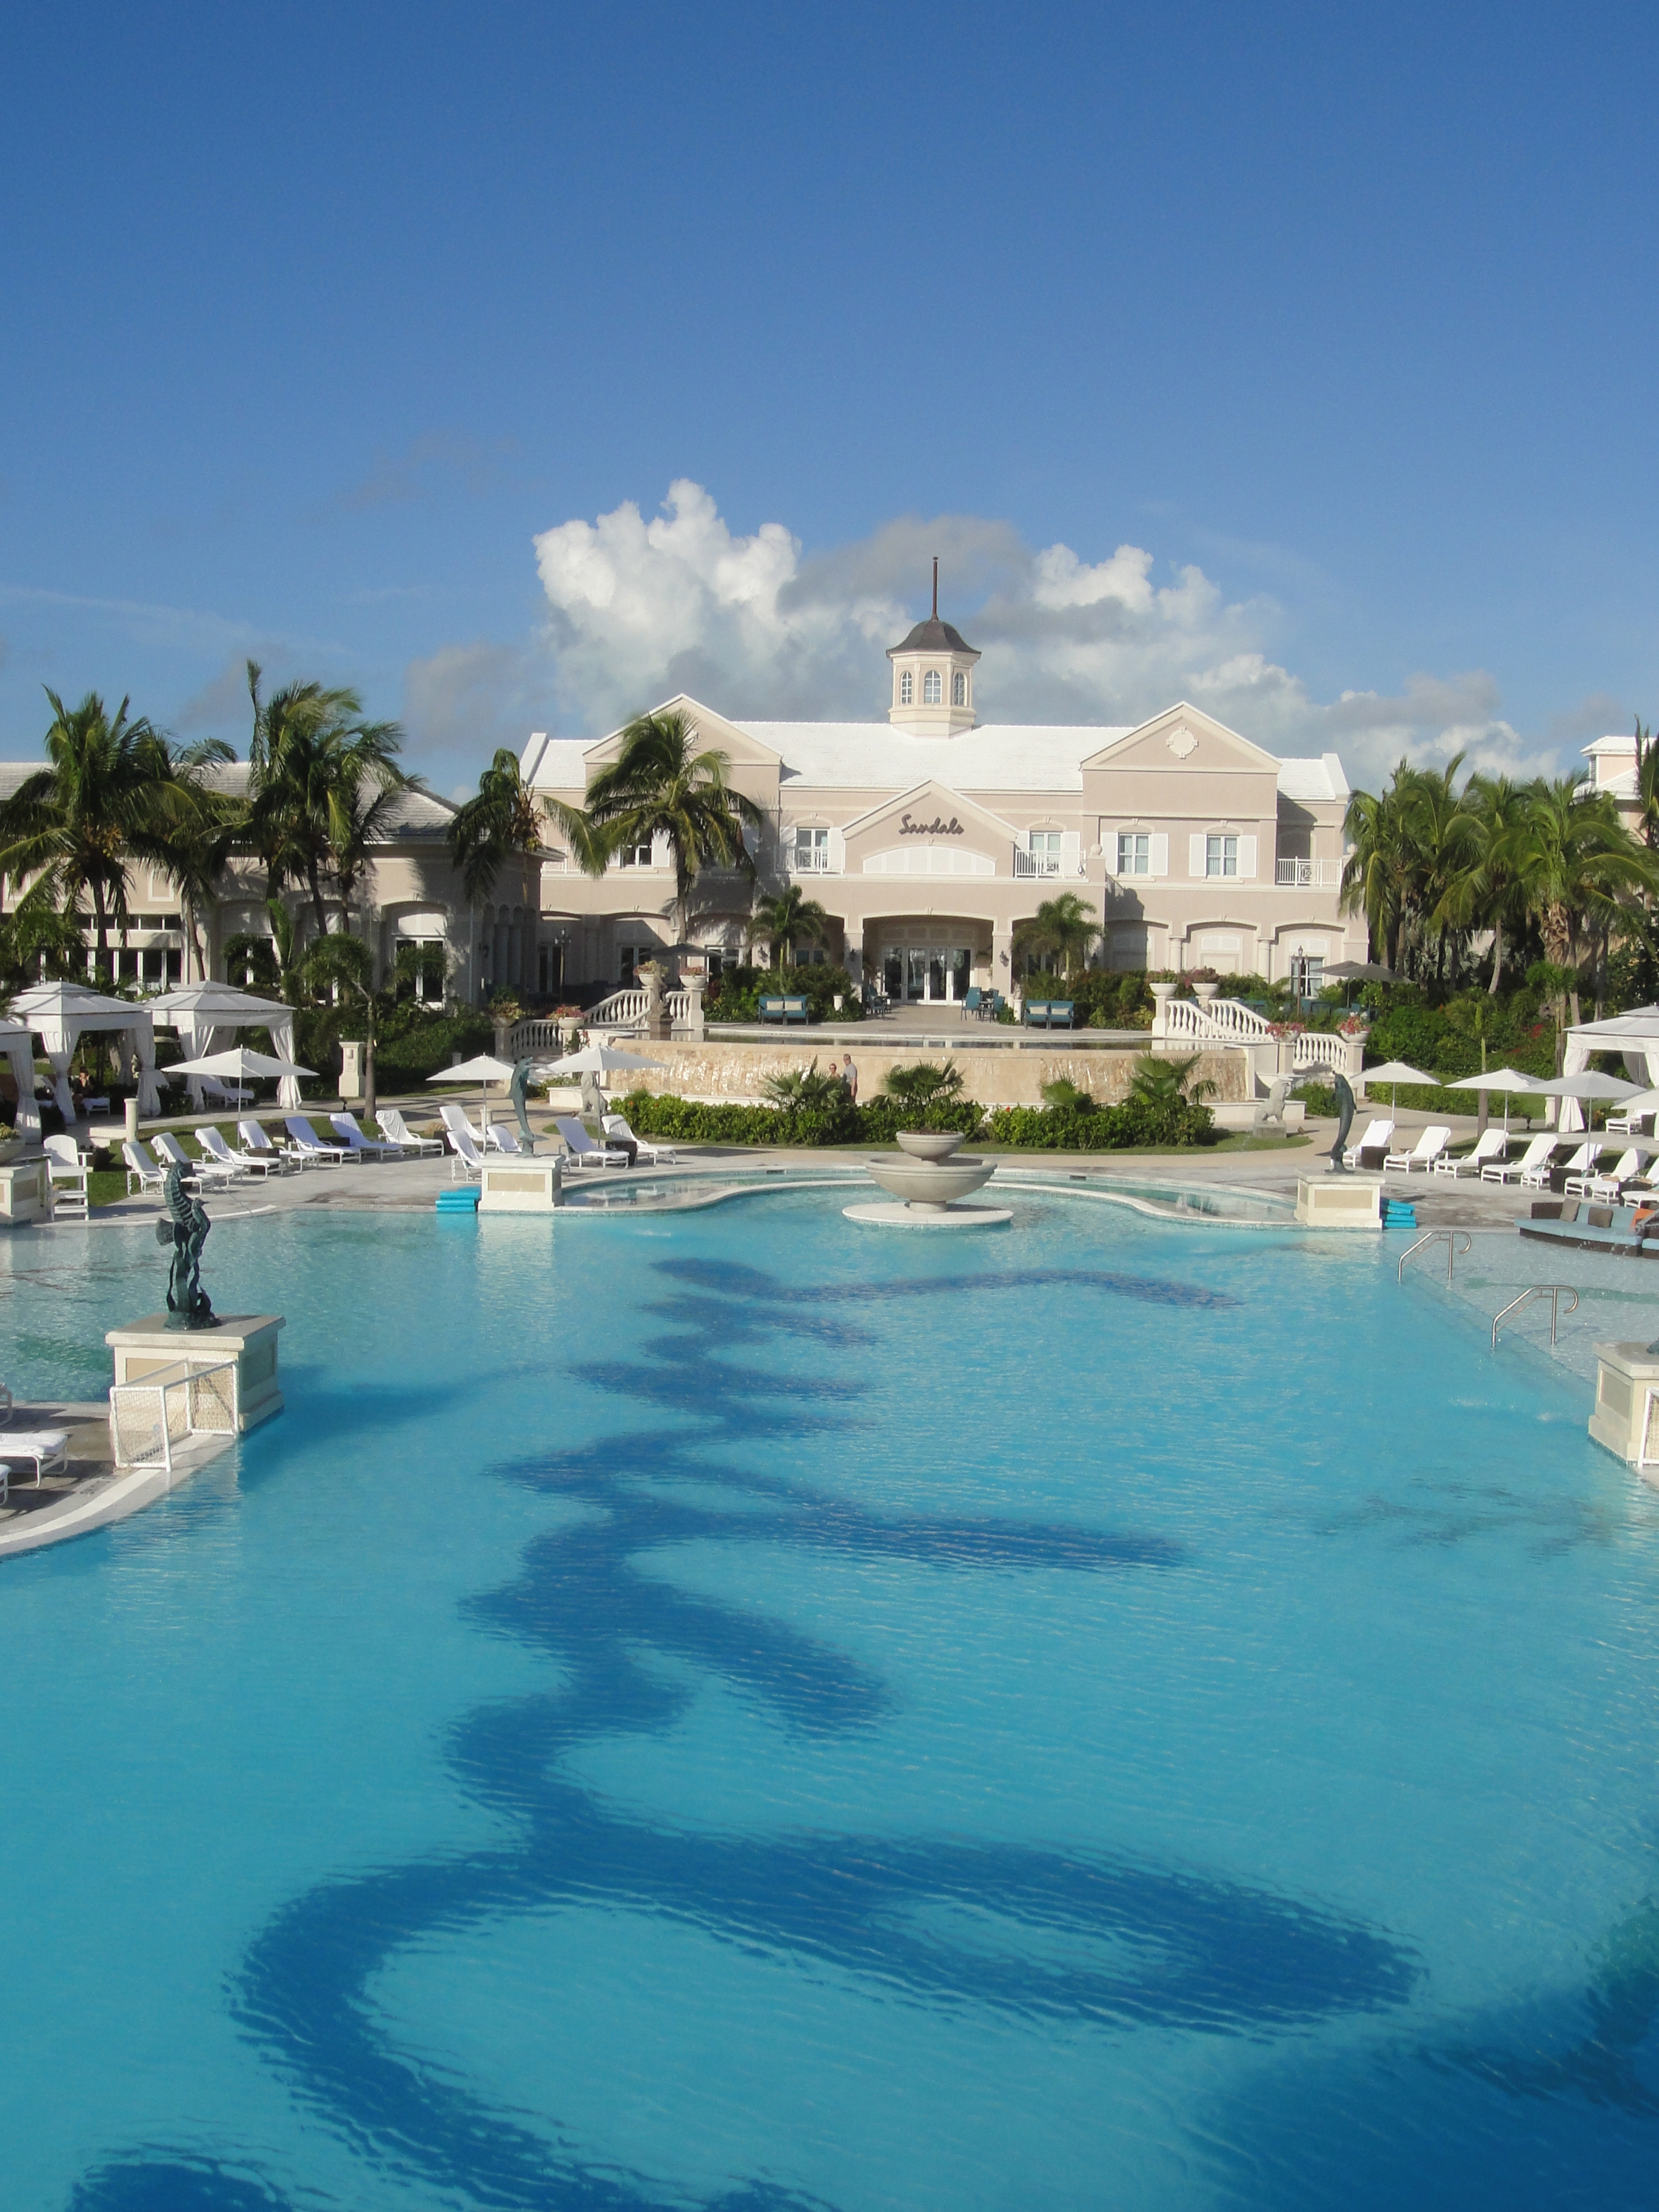 Sandals Emerald Bay caribbean all inclusive